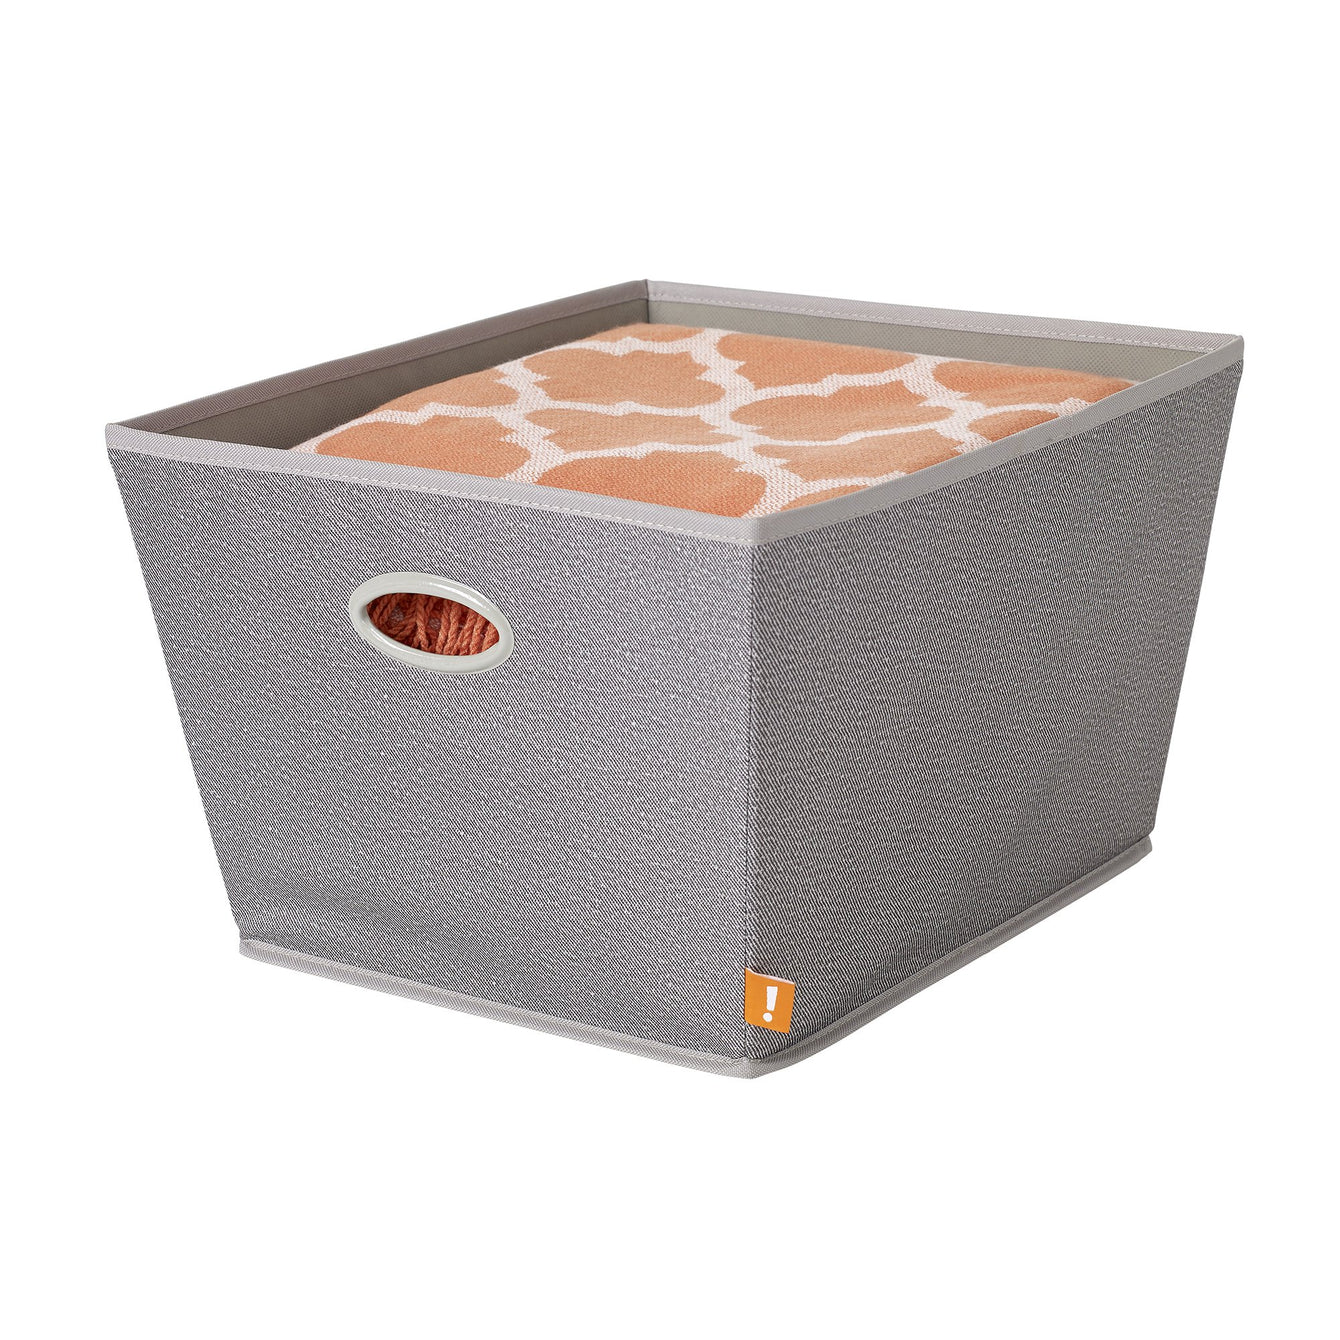 Large Paperboard Fabric Storage Bin - Style 5422